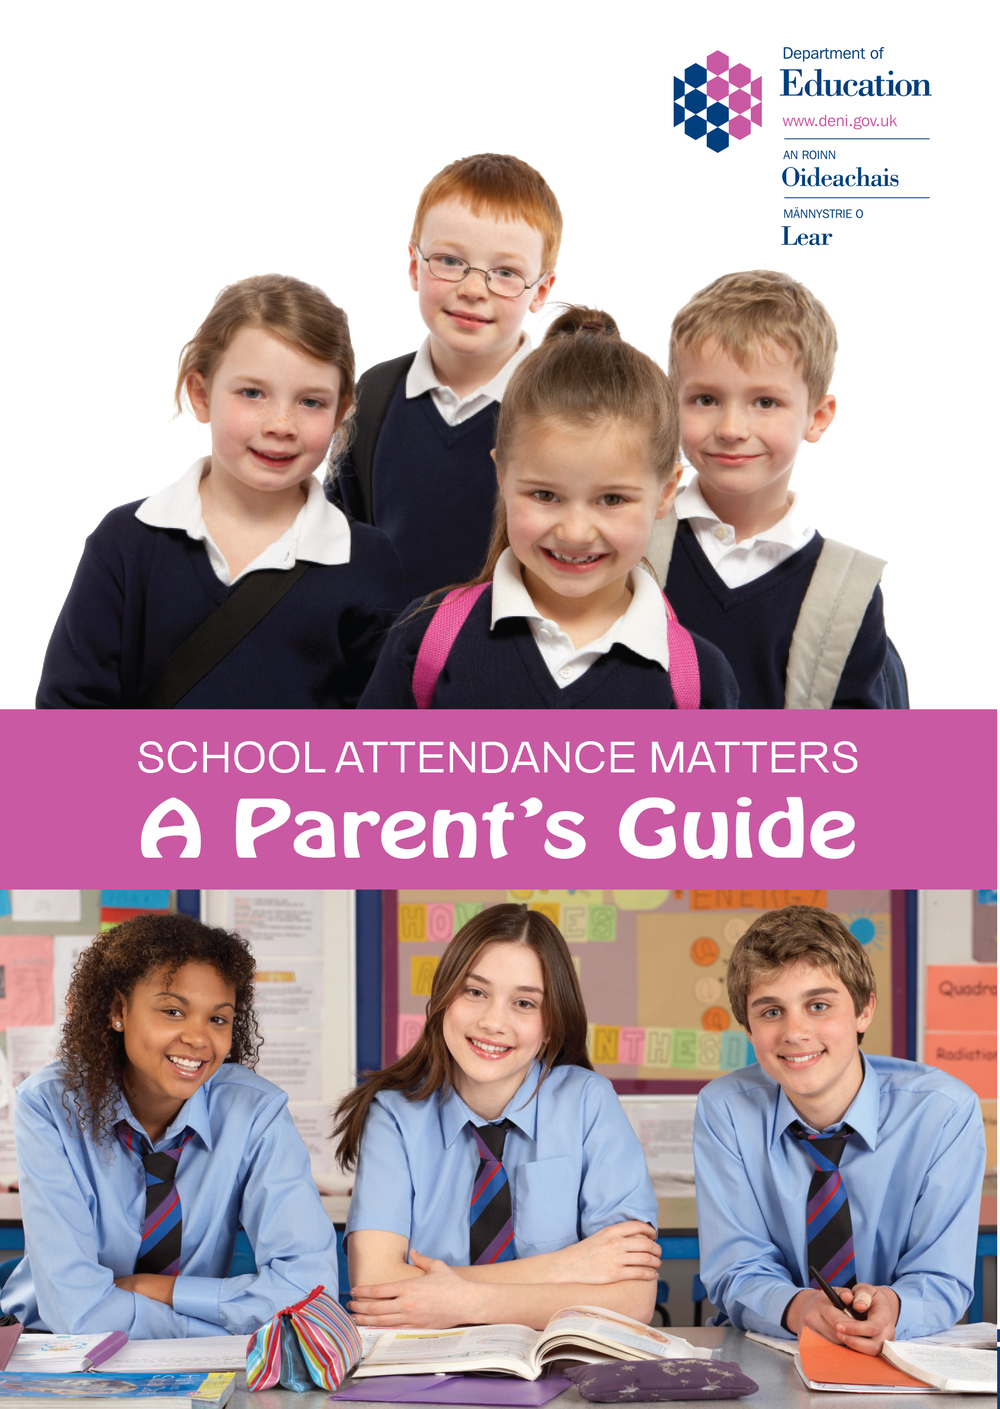 a_parents_guide_individual_pages-1.jpg